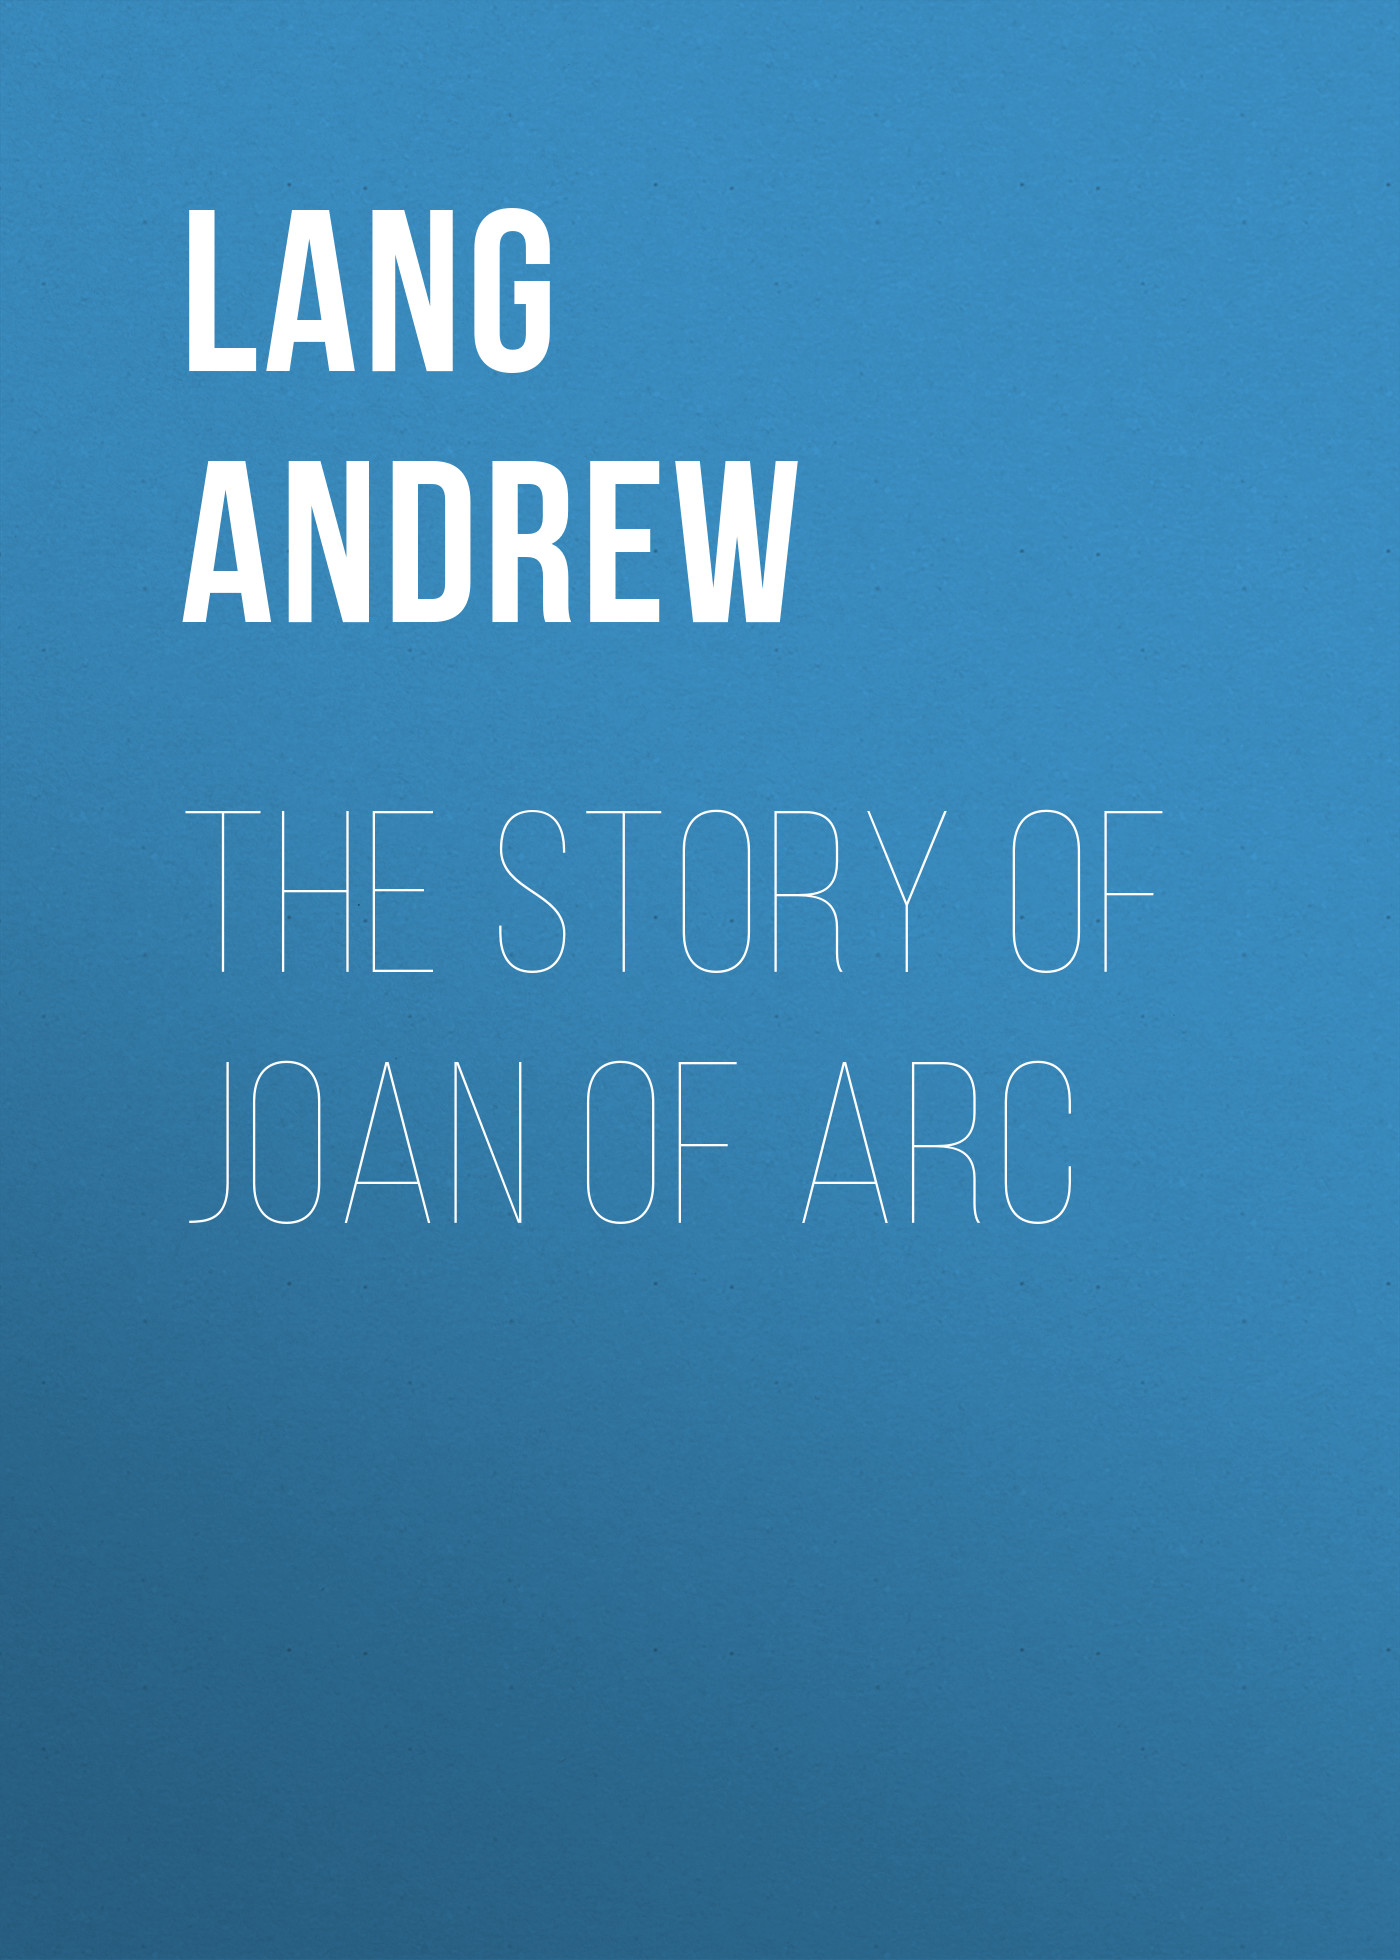 Lang Andrew The Story of Joan of Arc andrew lang tales of troy and greece